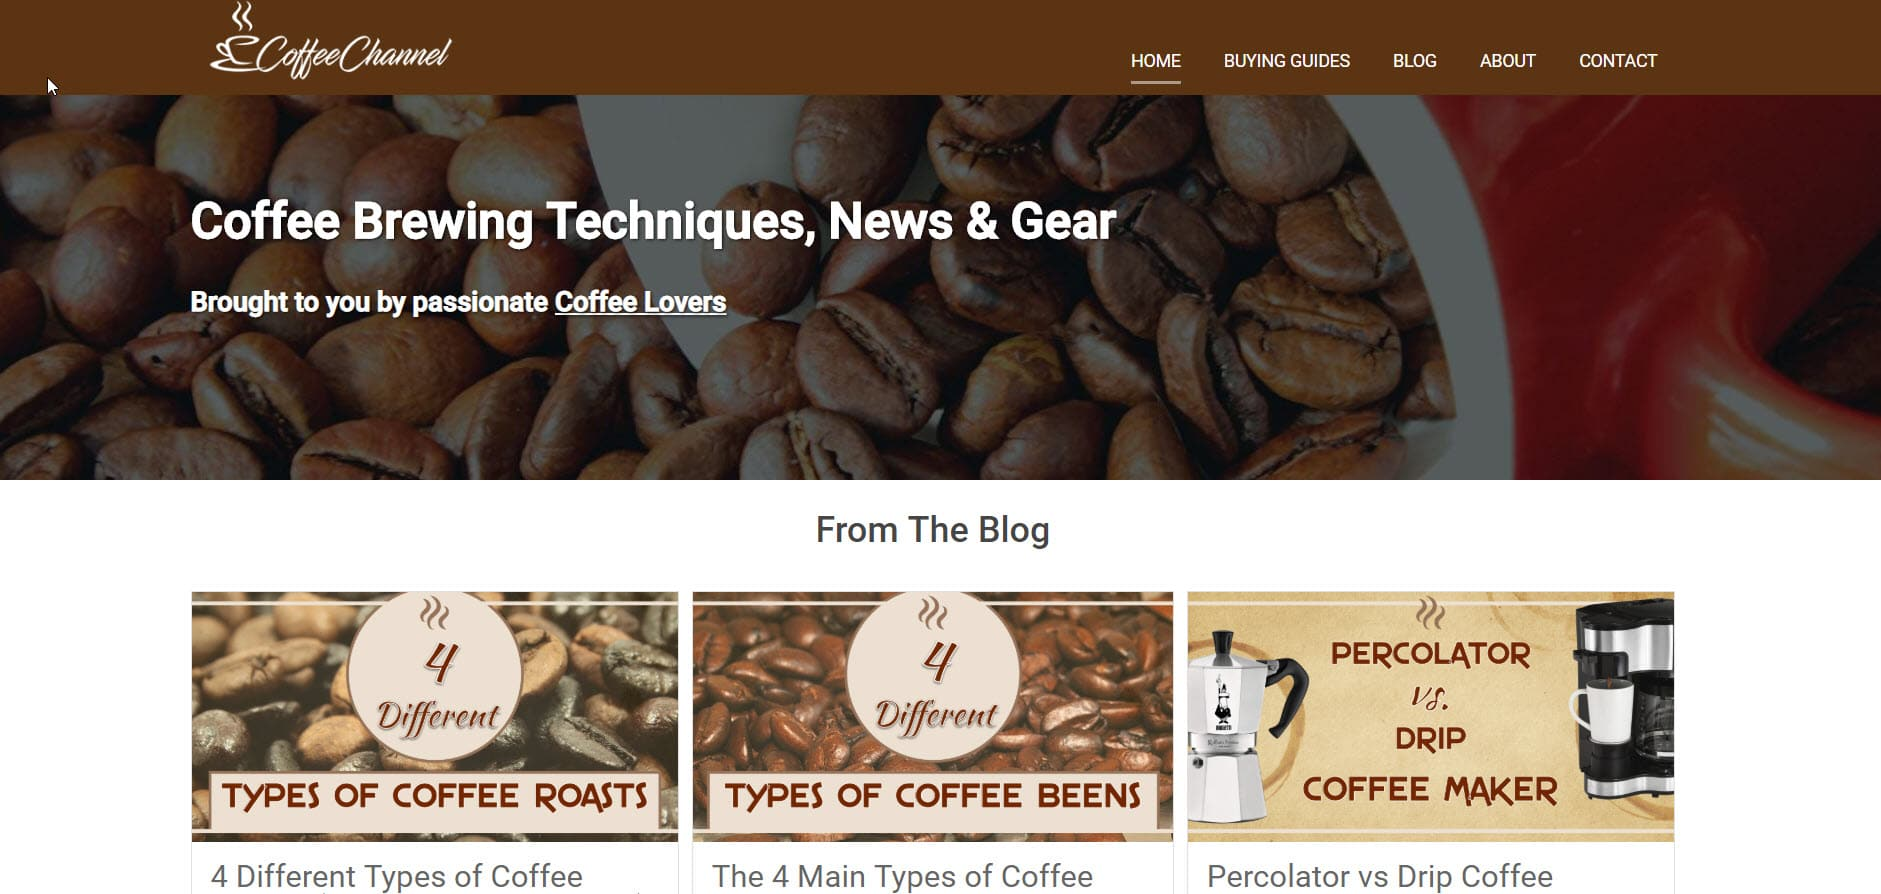 Coffee Channel Homepage